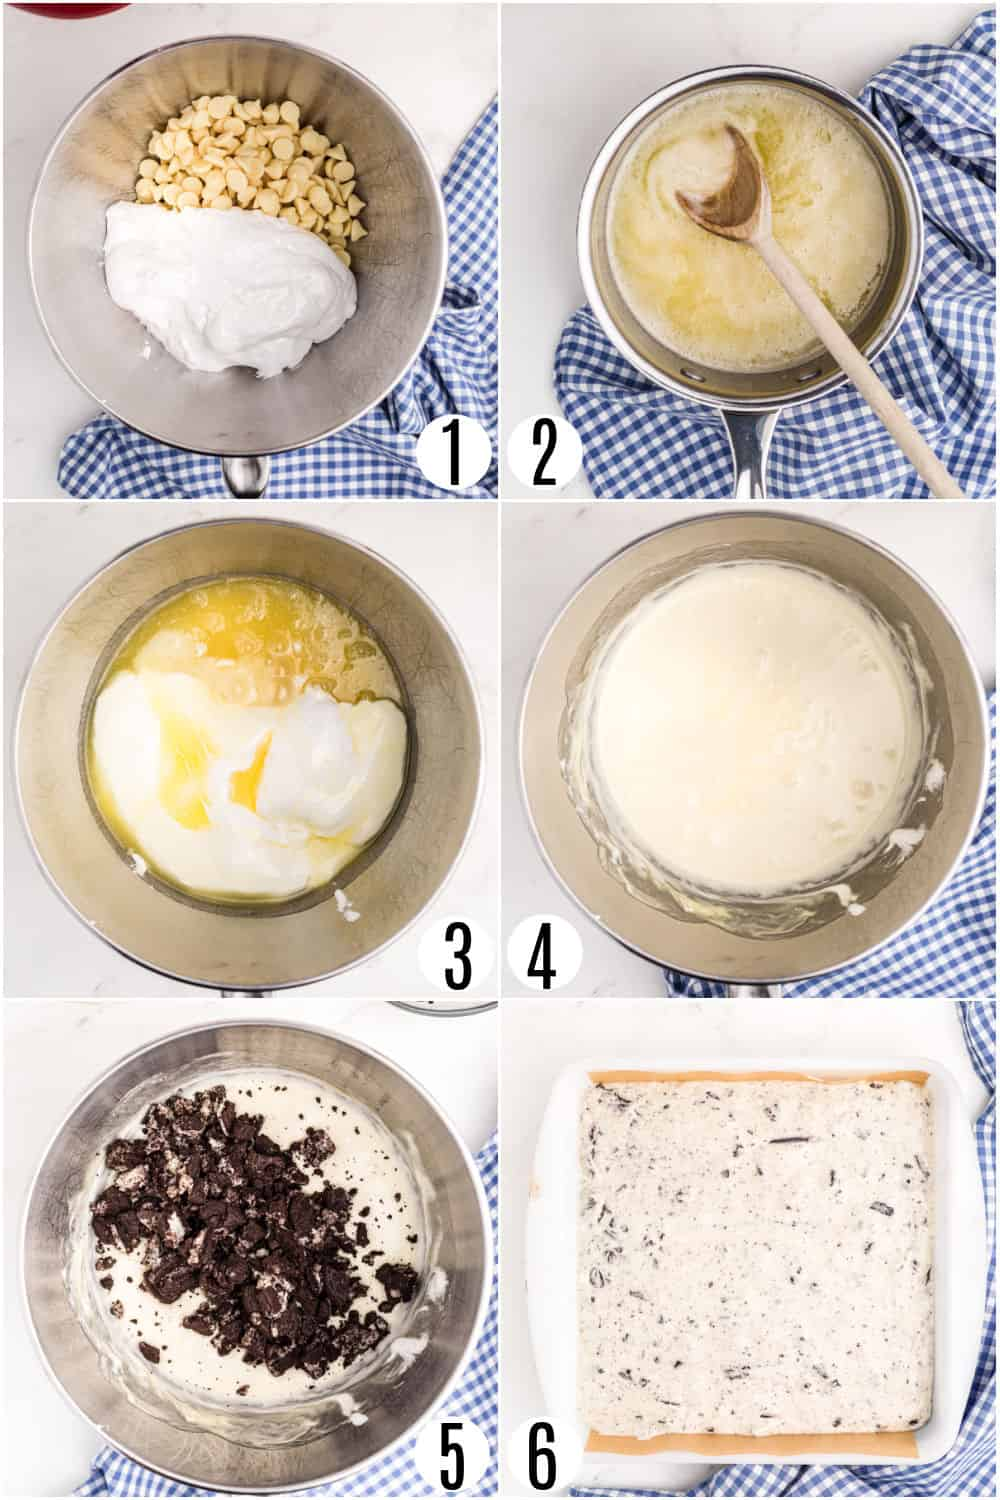 Step by step photos showing how to make oreo fudge.